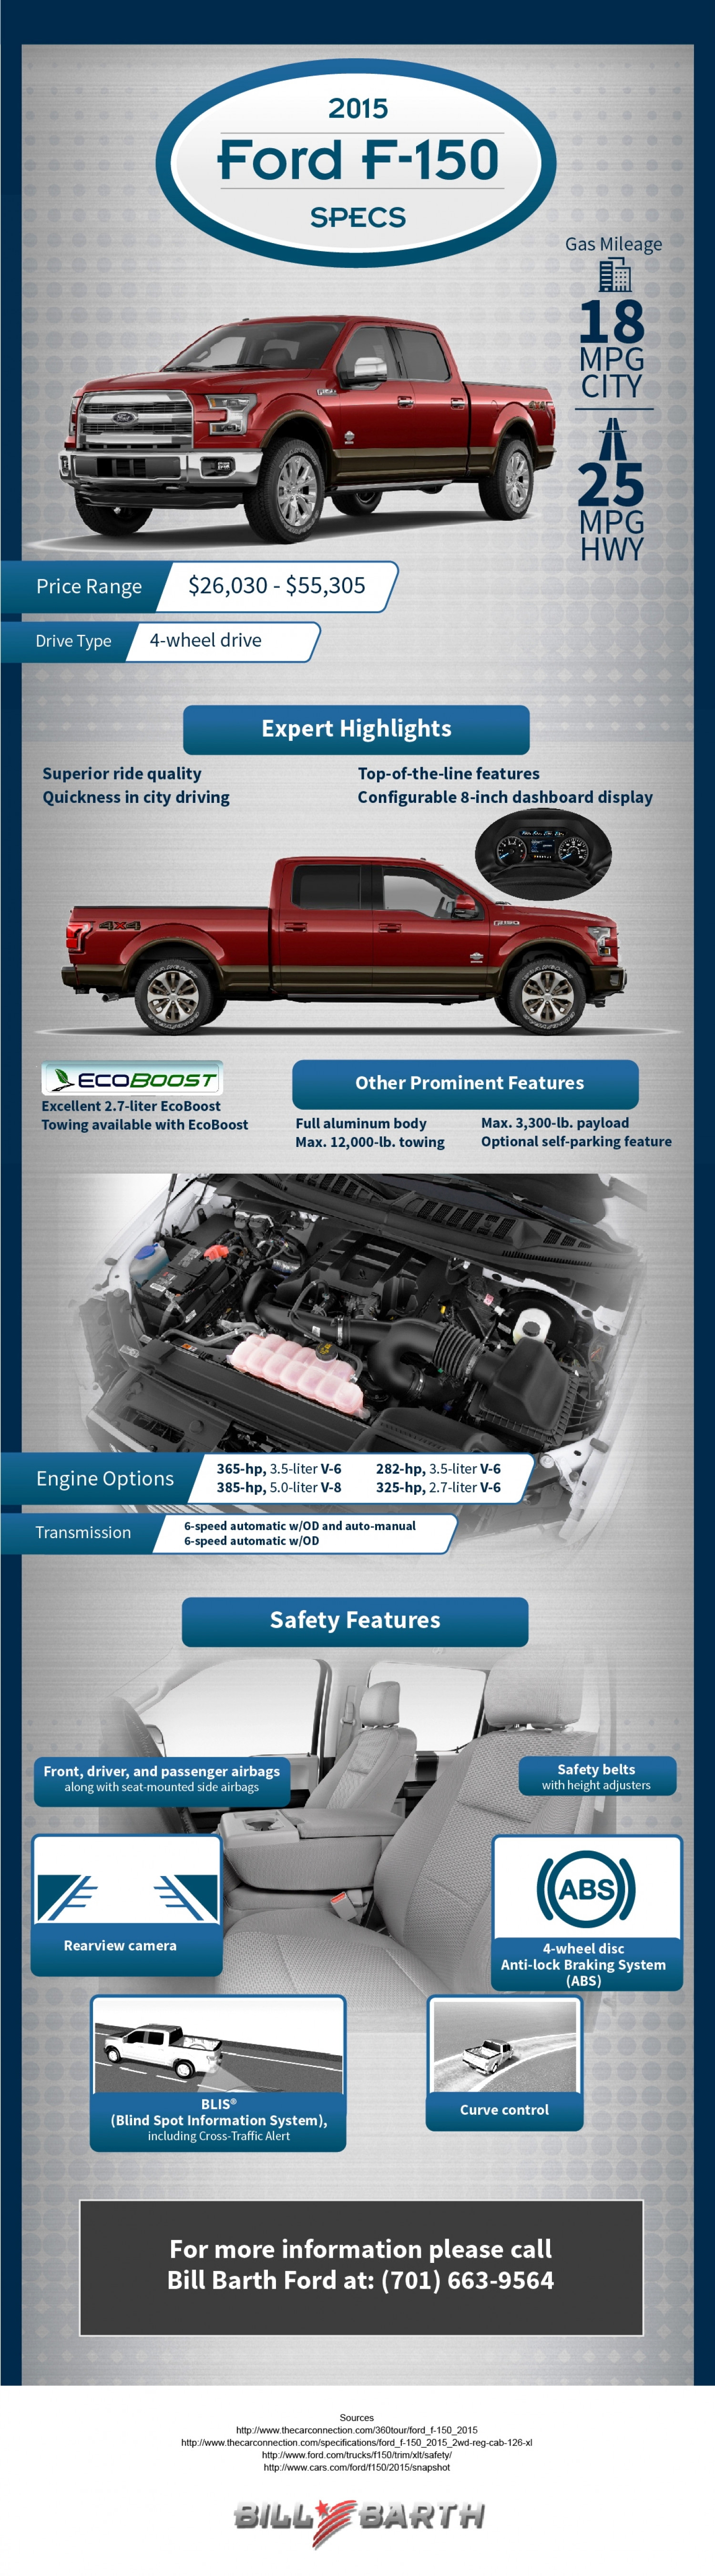 2015 Ford F-150 Specs Infographic